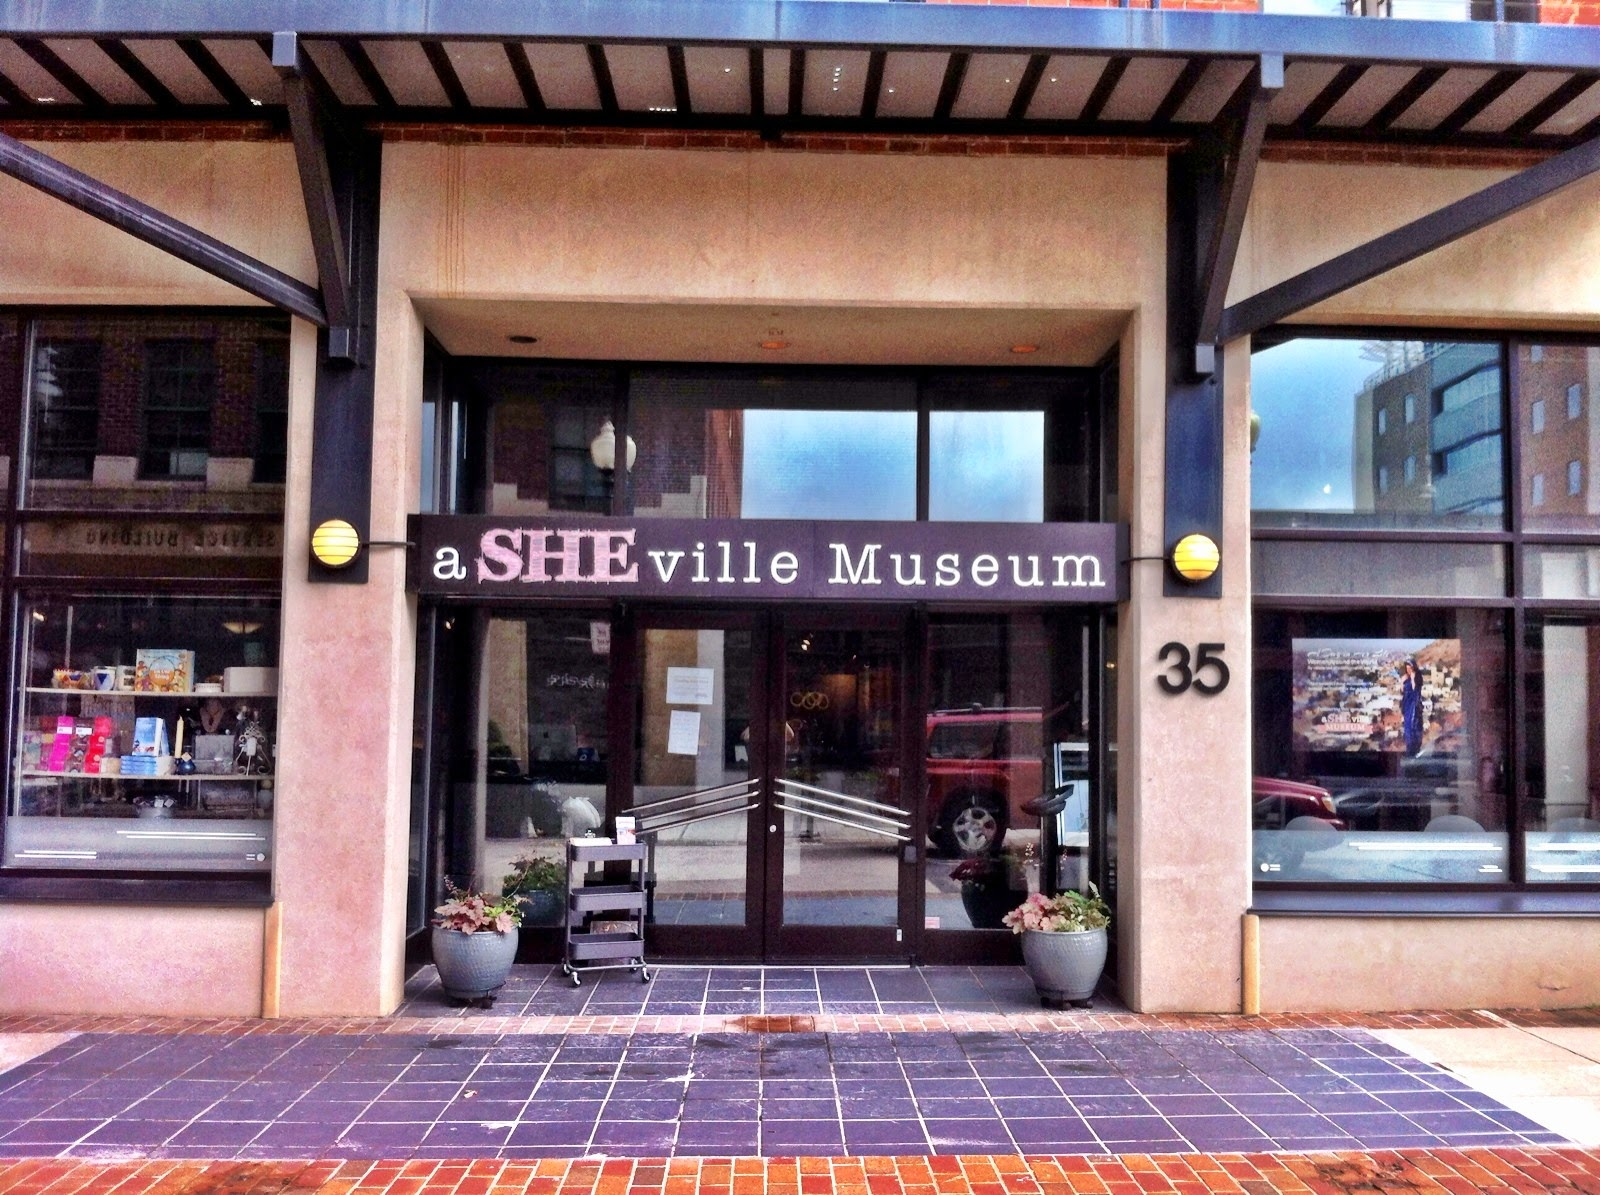 This relatively new museum focuses on the history of women and girls in Asheville and beyond.